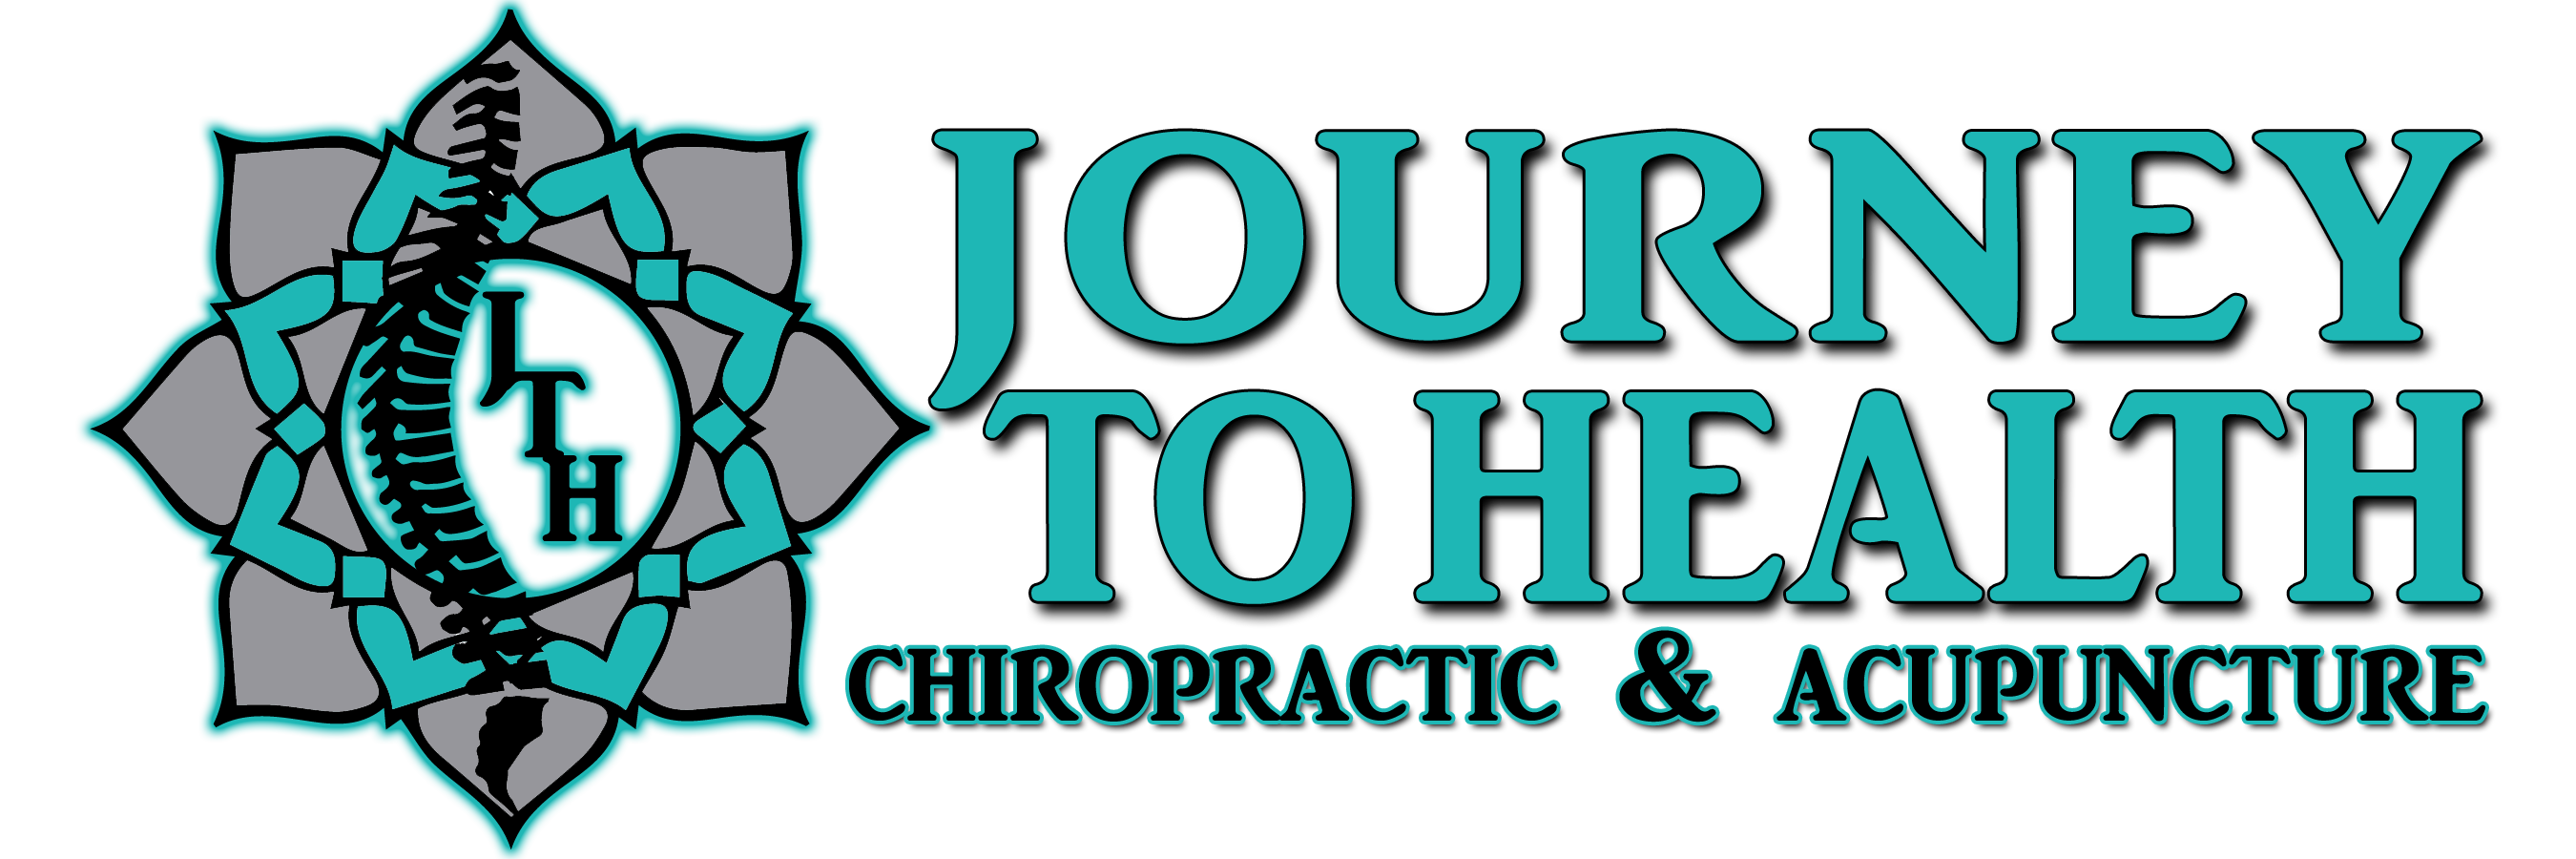 Journey to Health Chiropractic & Acupuncture